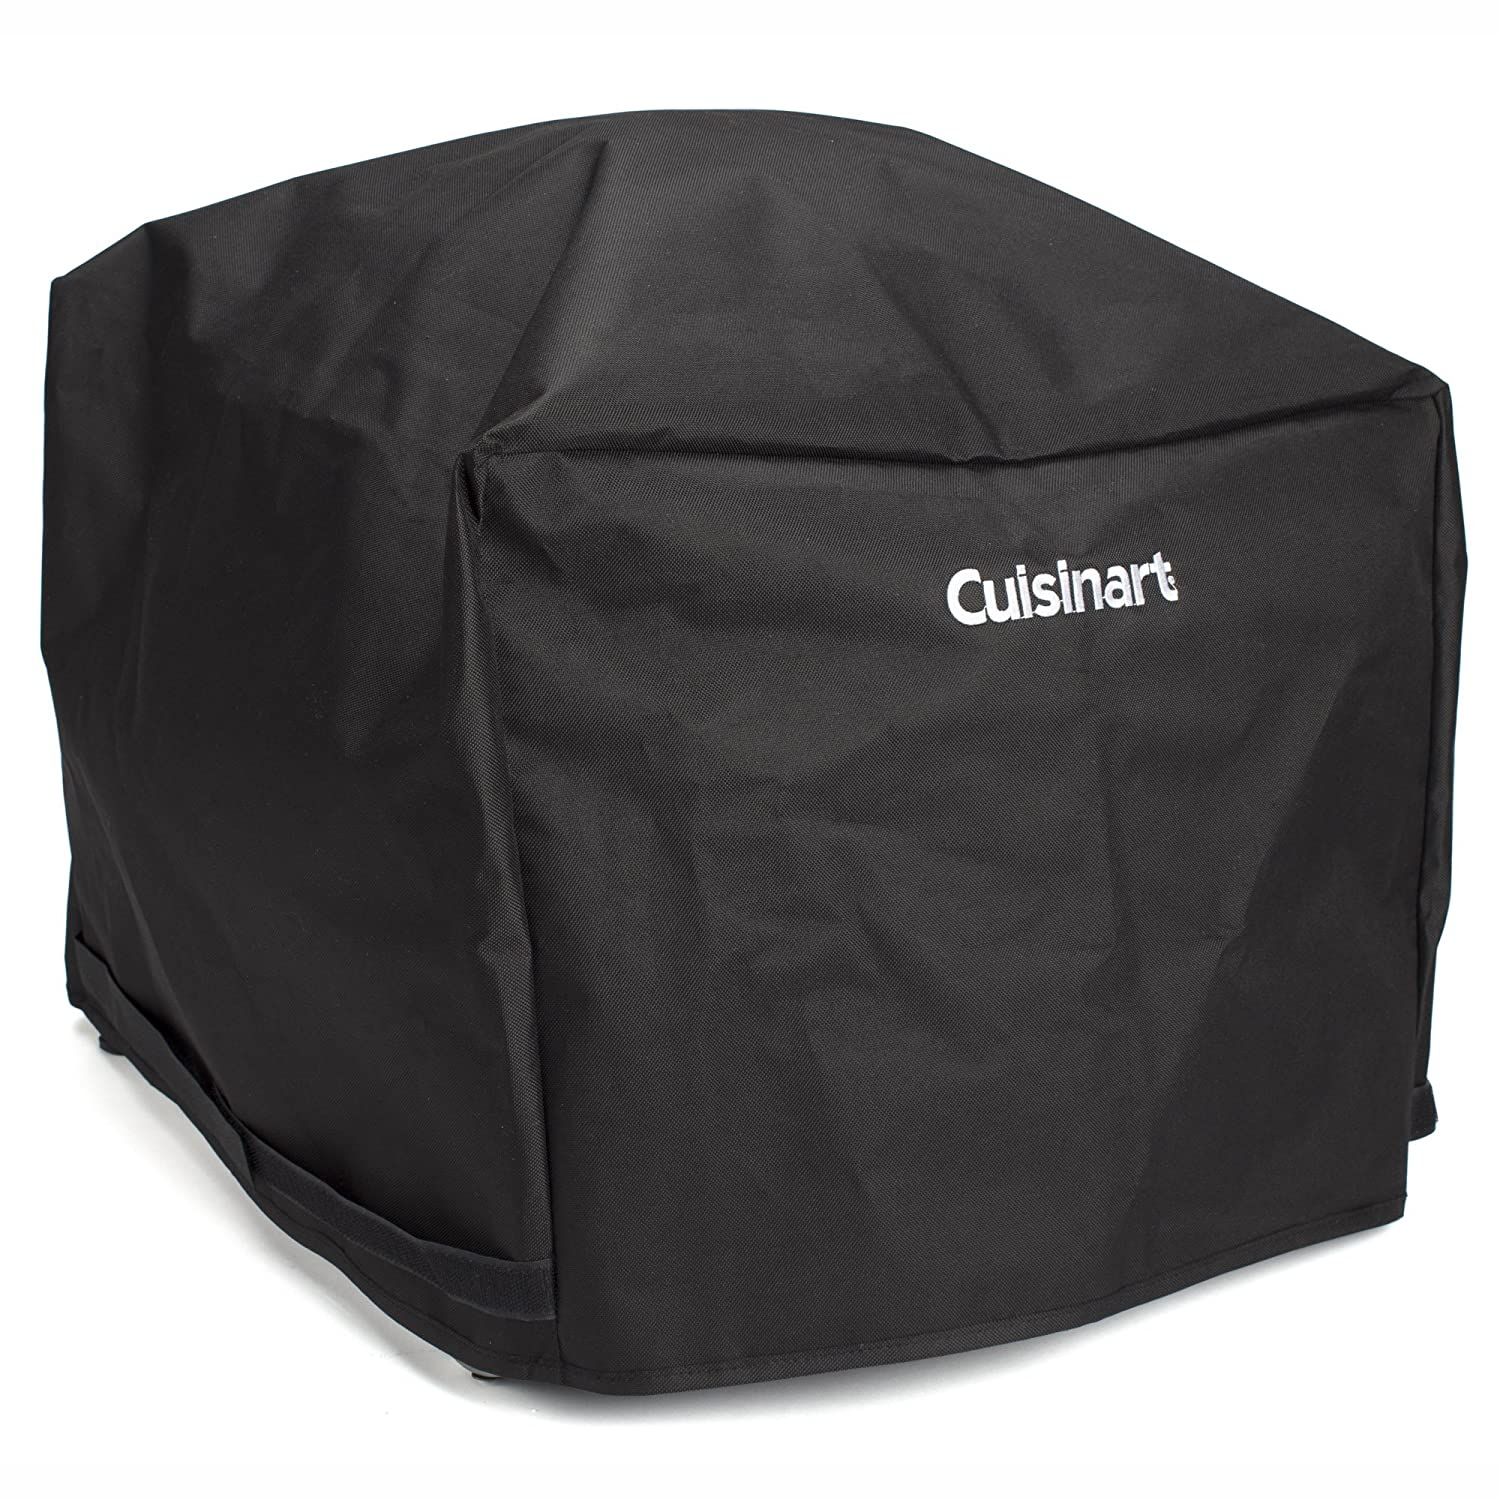 Cuisinart CGC-10049 Searin' Sphere Portable Grill Cover